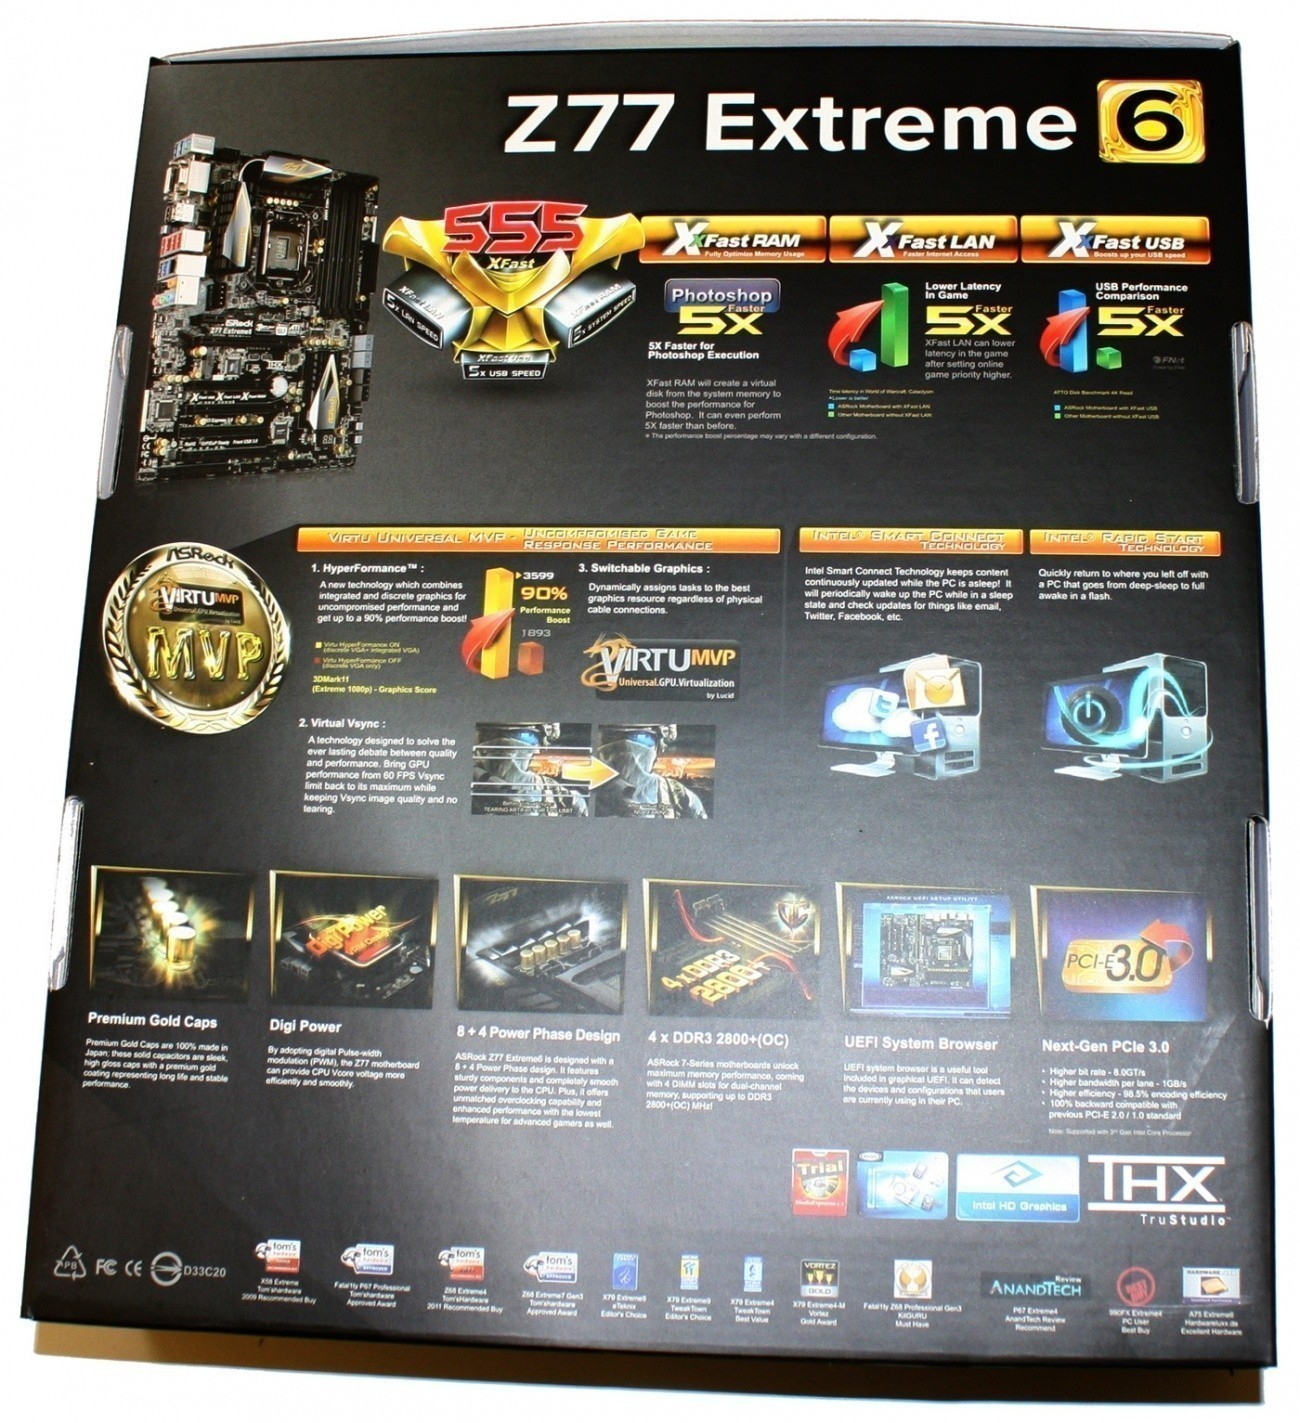 asrock_z77_extreme6_intel_z77_with_ivy_bridge_motherboard_review